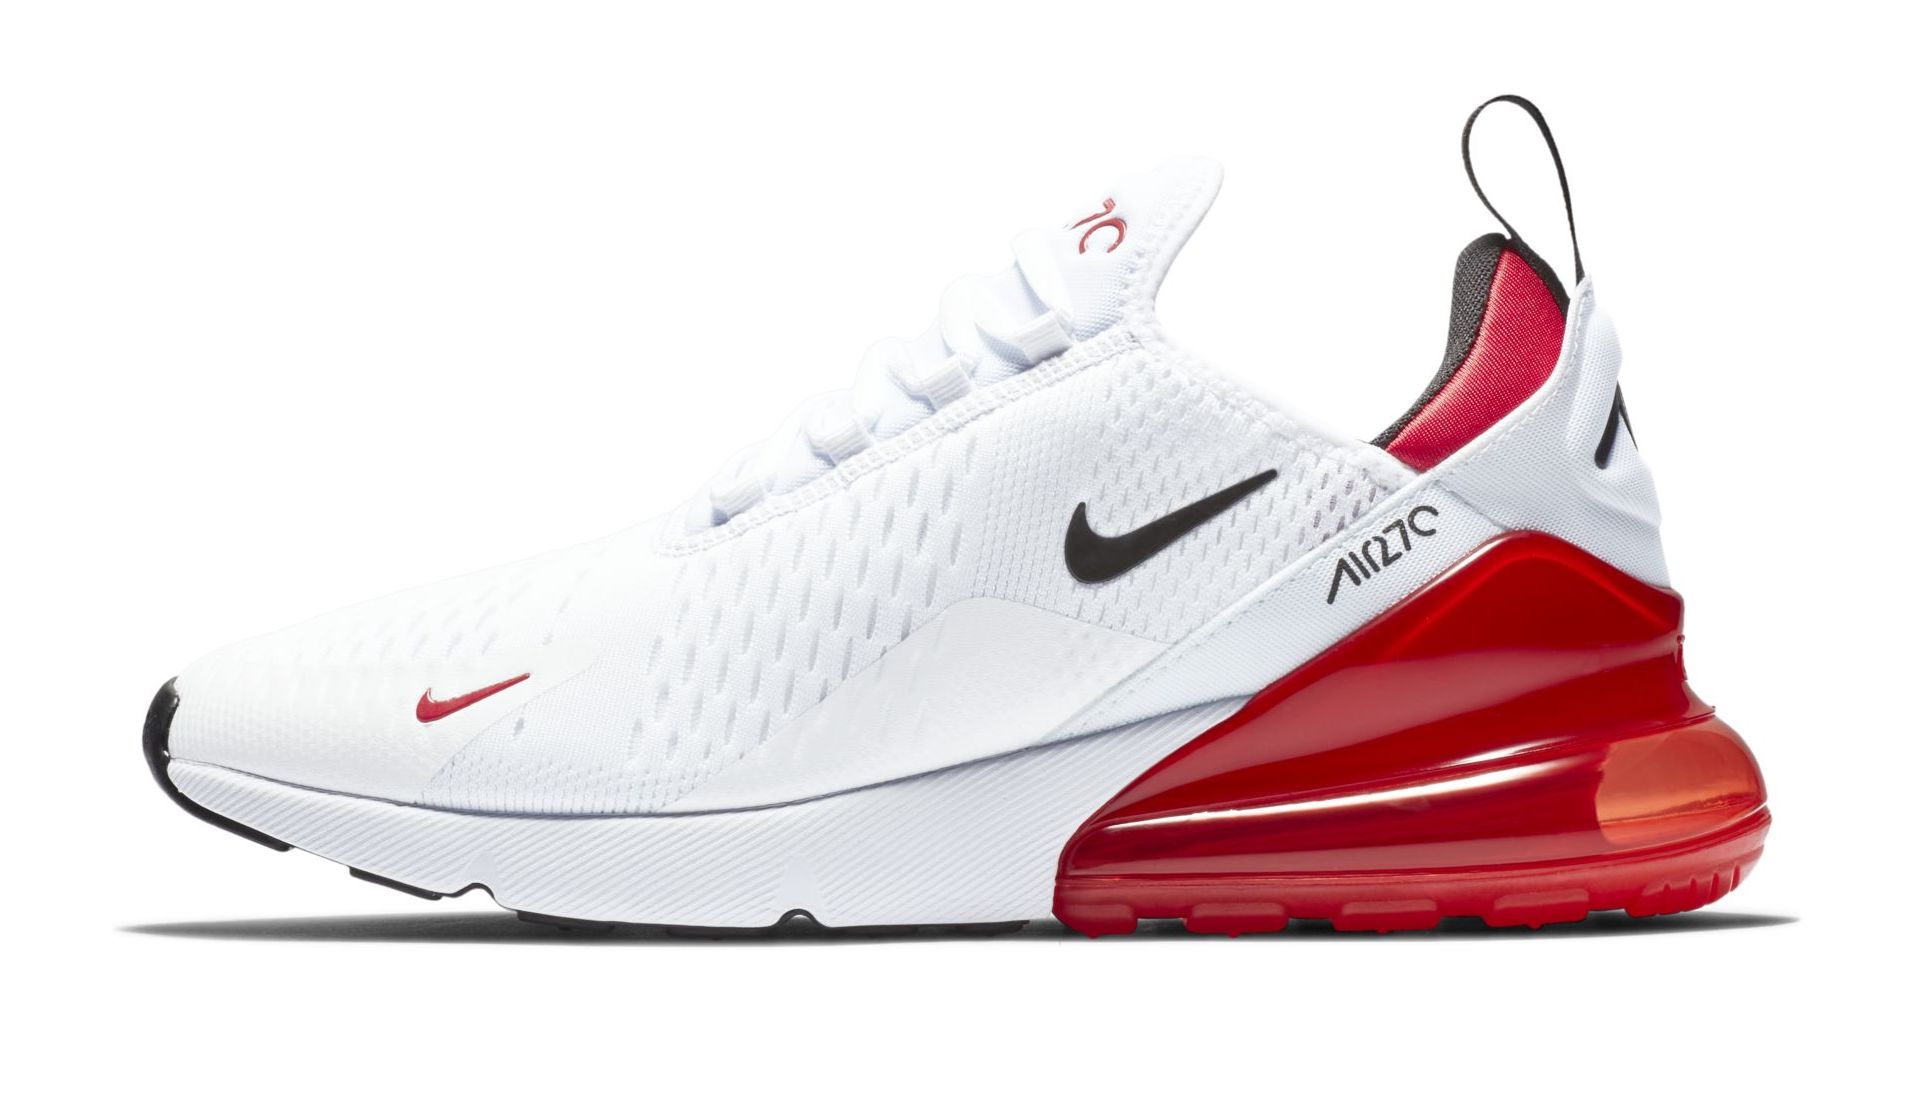 Nike Air Max 270 White University Red Coming Soon